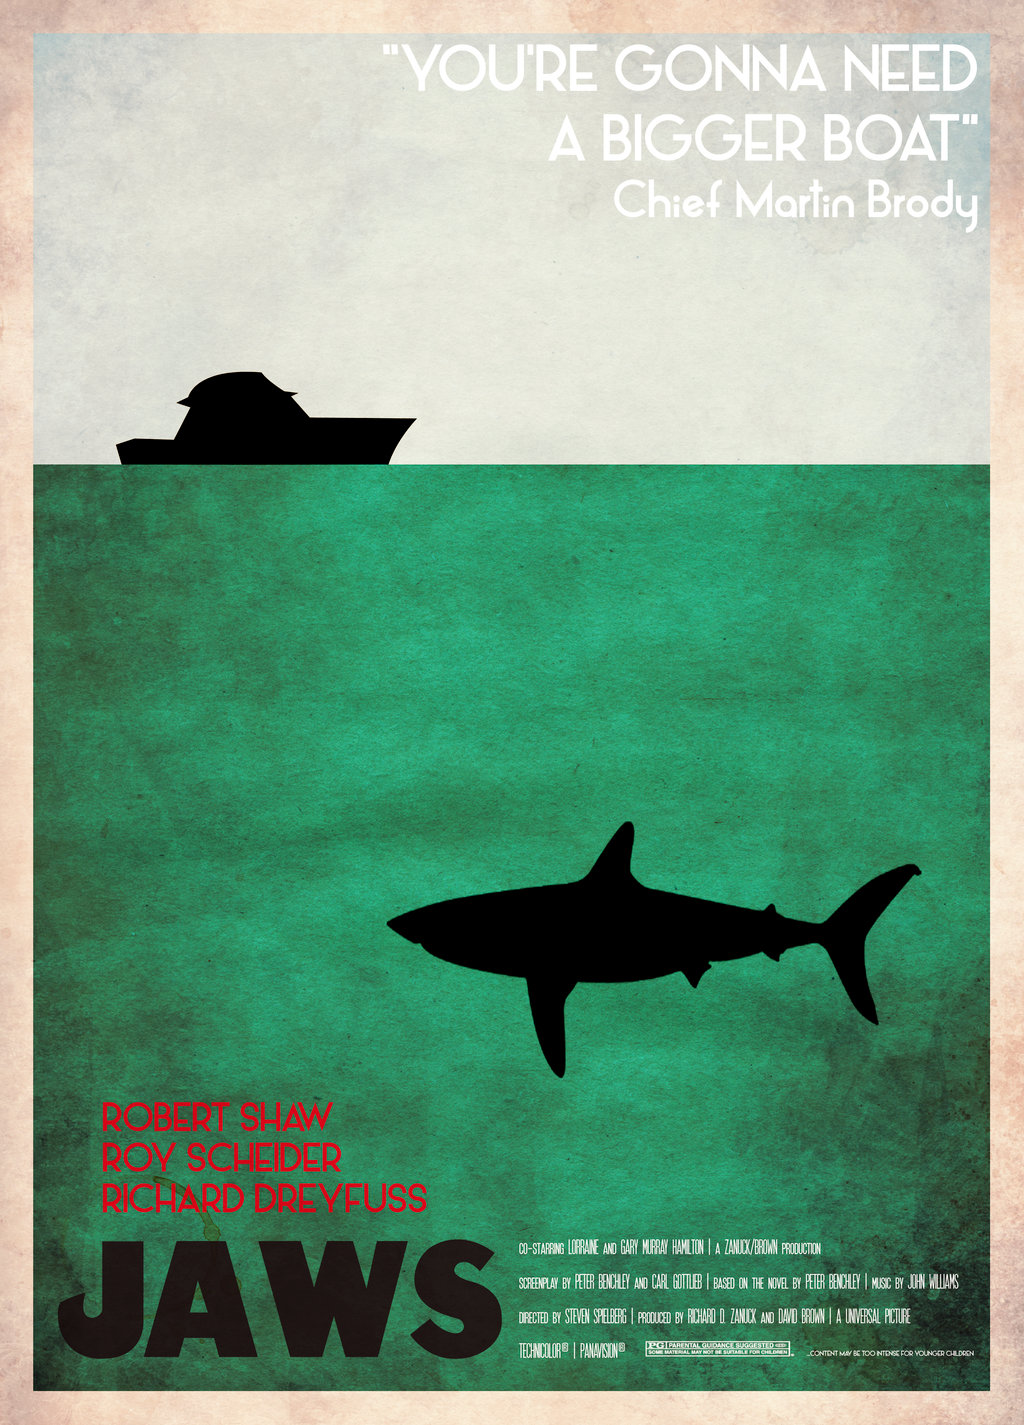 Jaws Quotes For Dads. QuotesGram